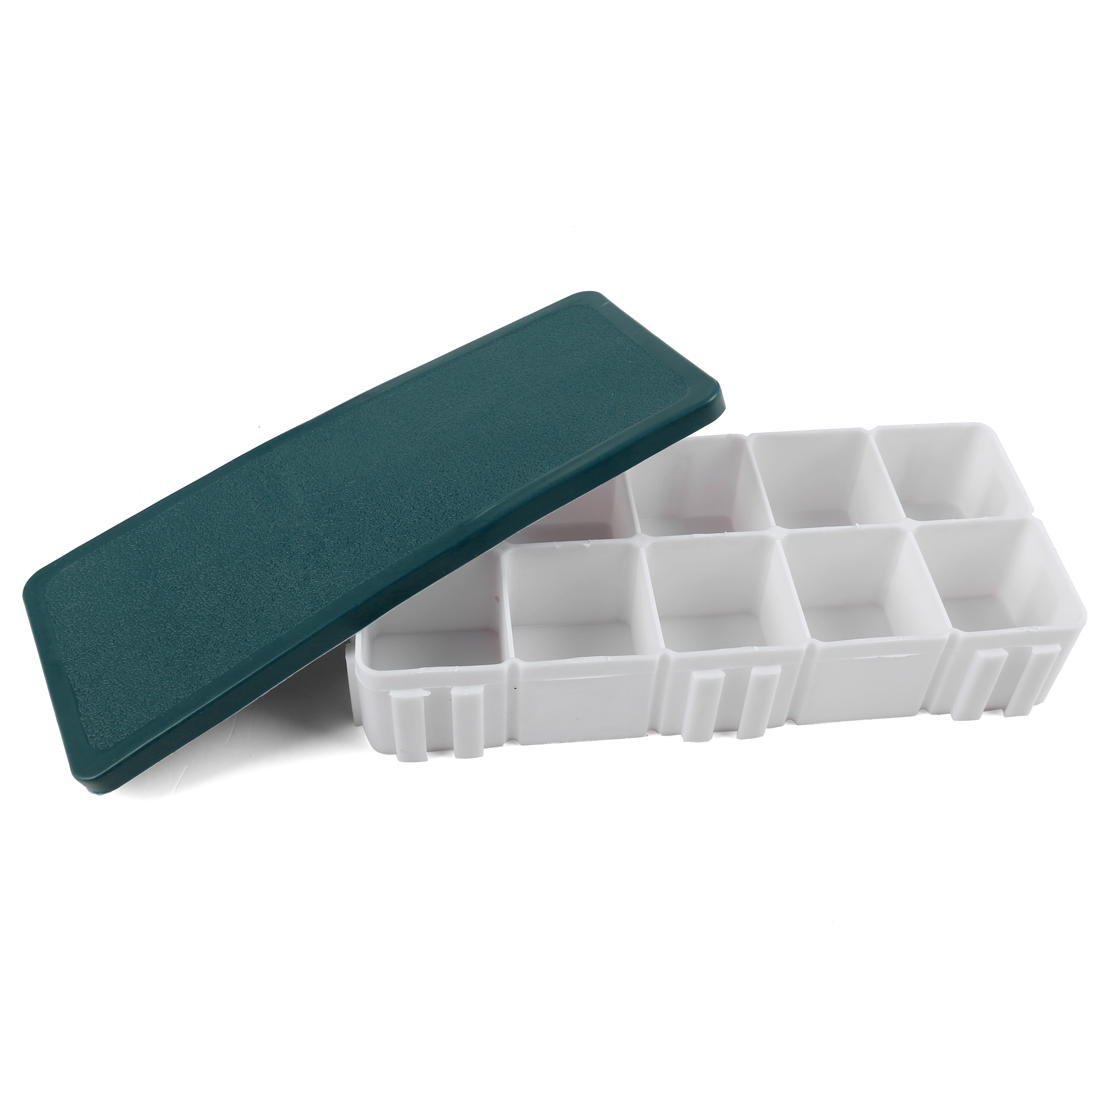 White Plastic 10 Compartments Storage Case Box w Dark Green Rubber Cover